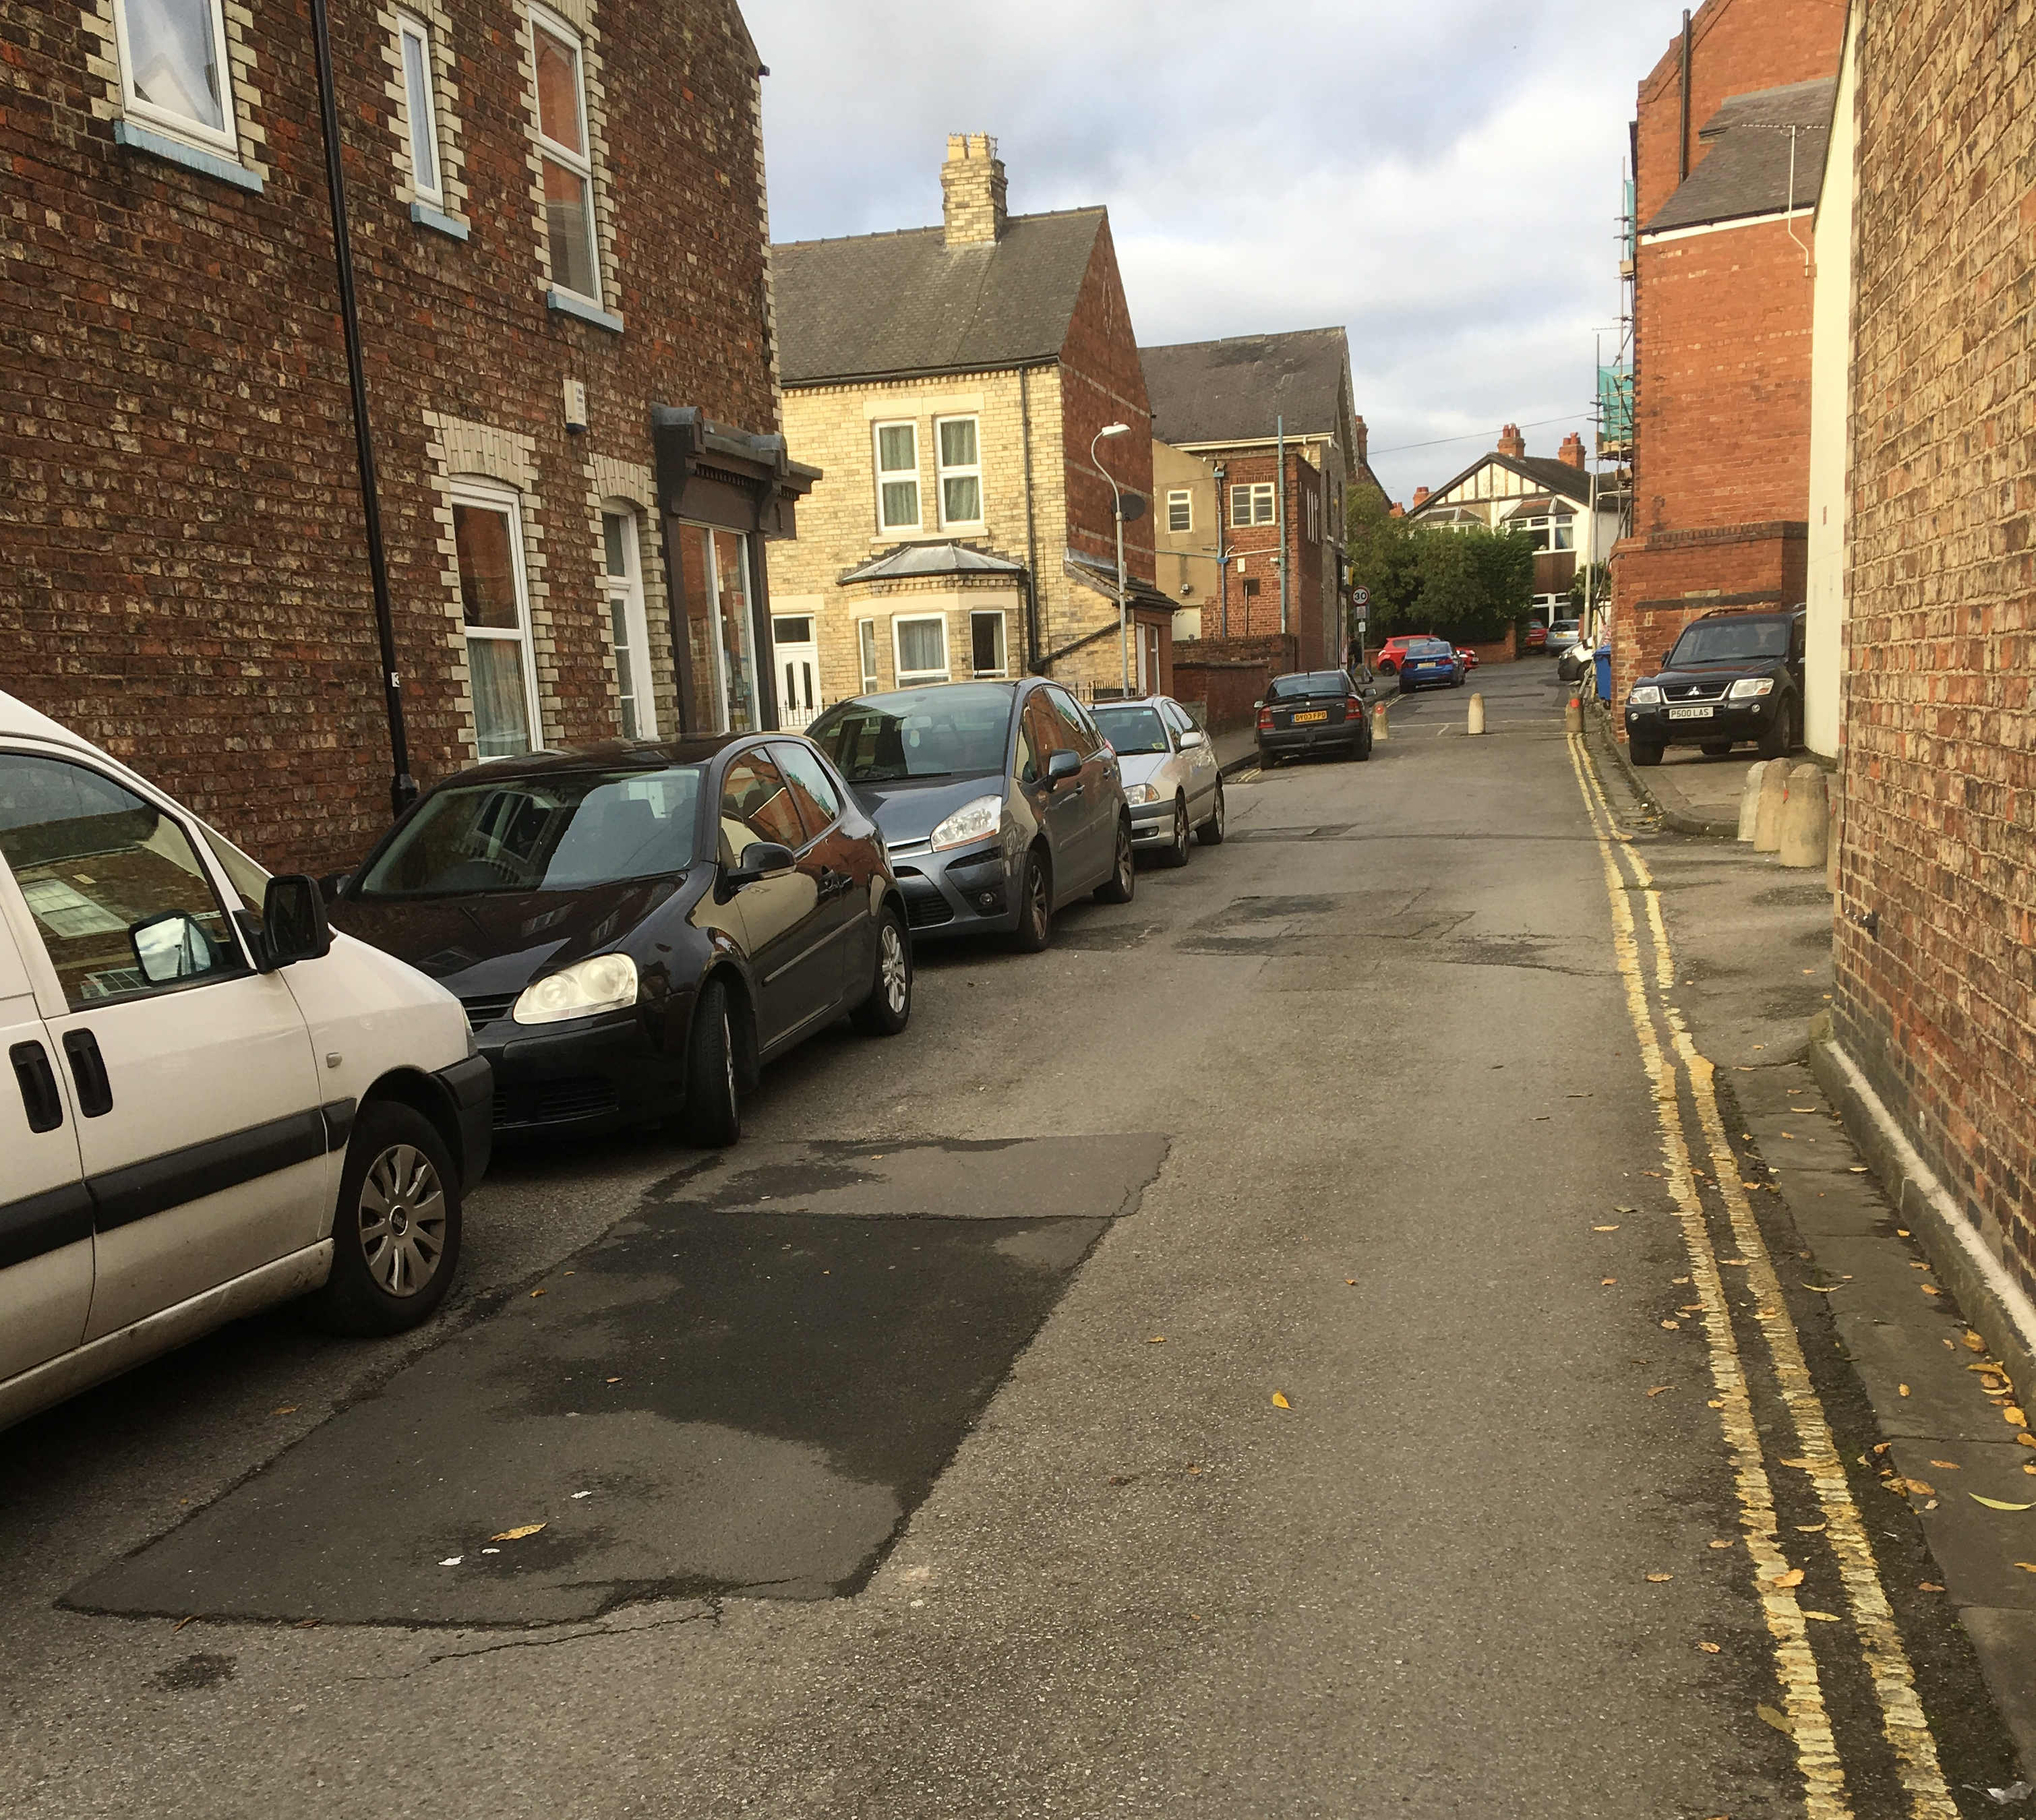 Car parking problems on School Street were reported. A survey is being undertaken to see whether residents want a ResPark scheme to be introduced in the area.